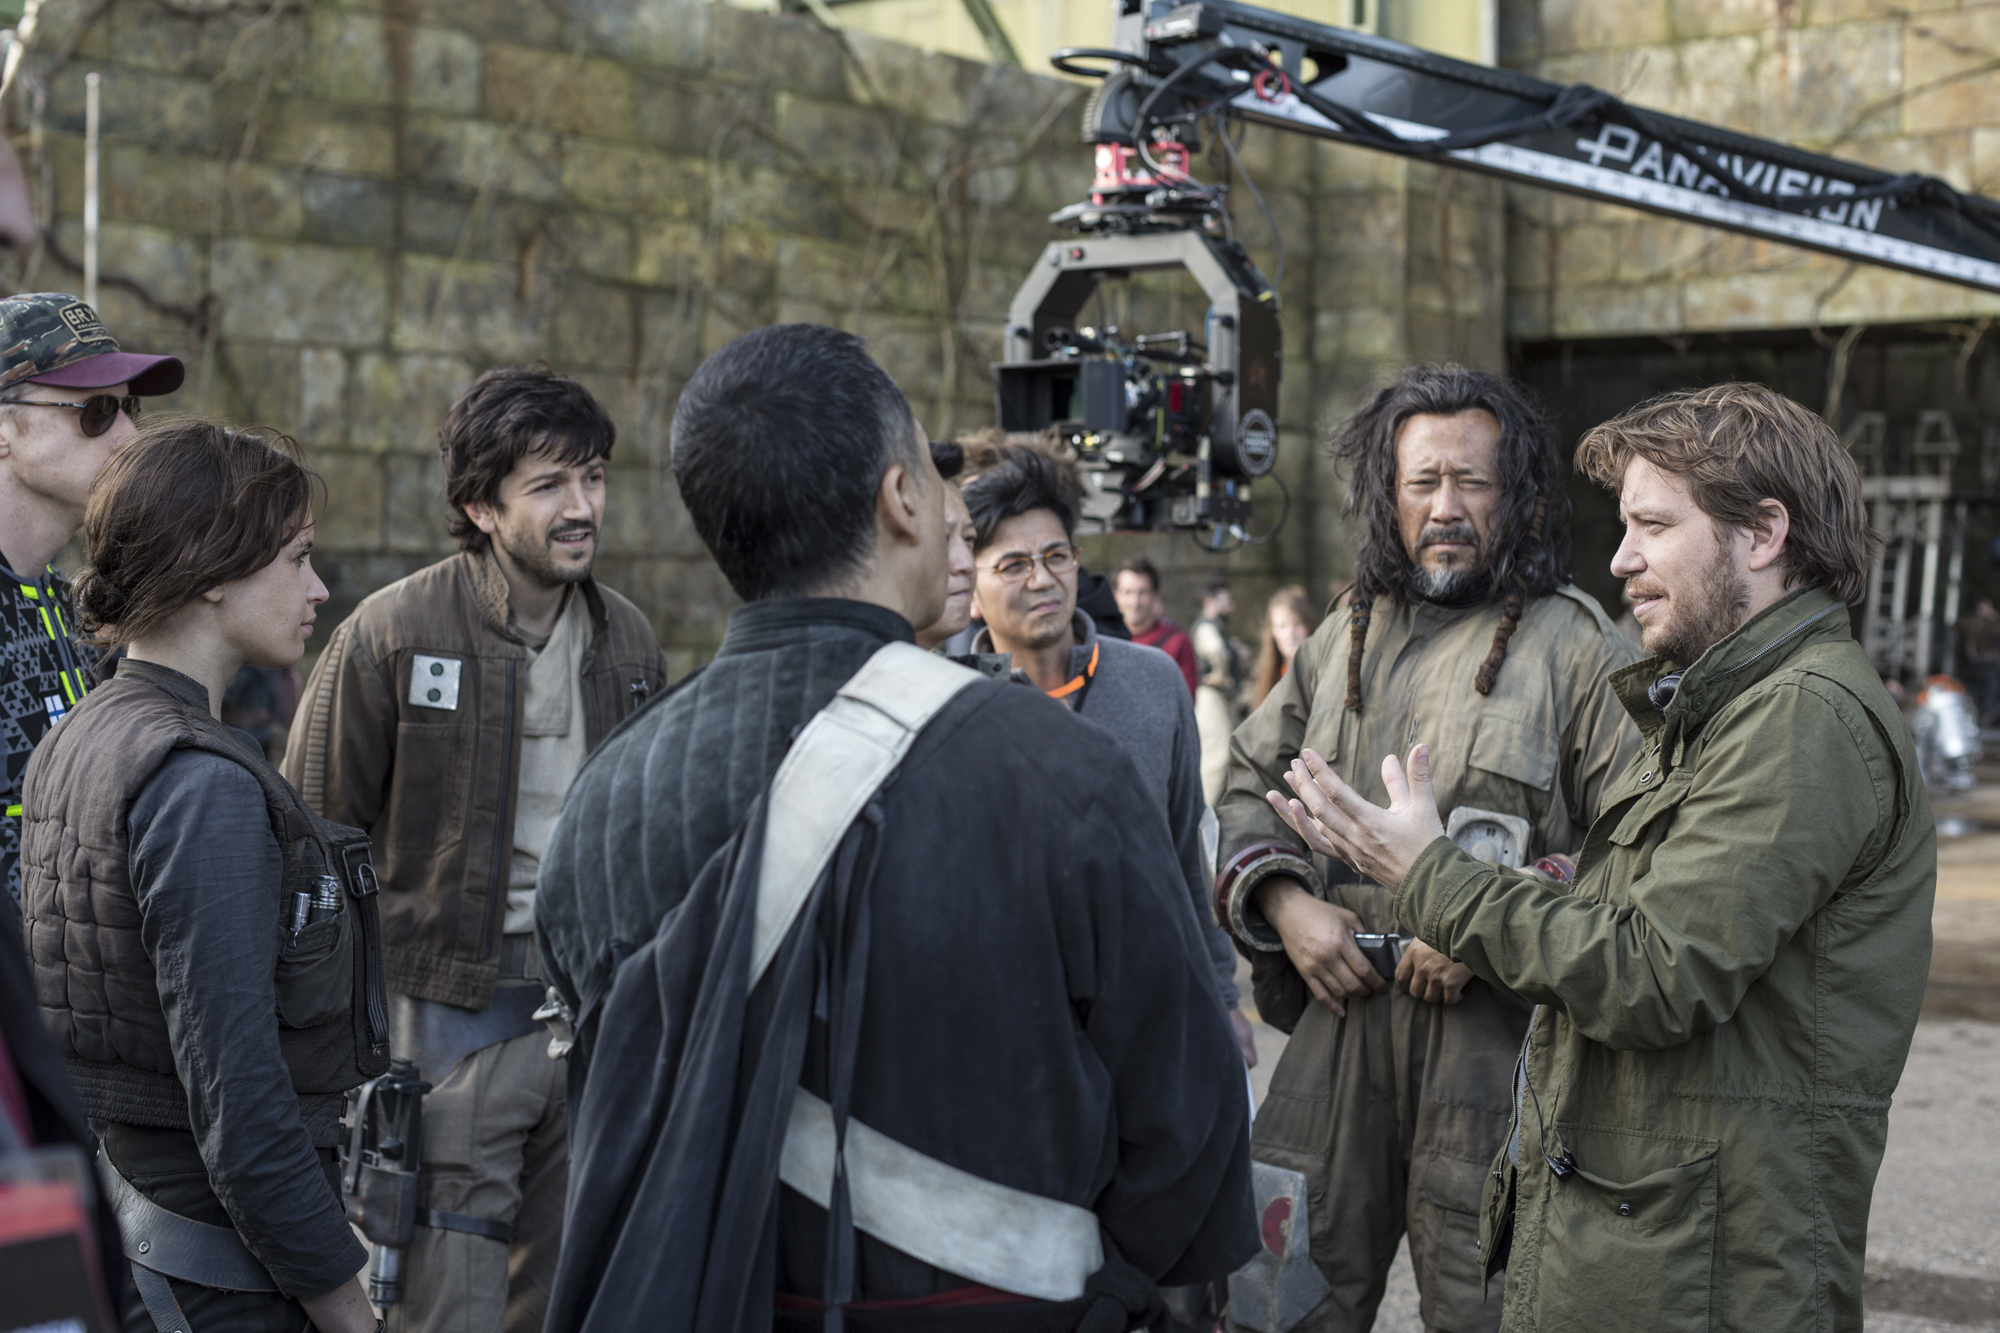 Rogue One: A Star Wars Story..L to R: Alan Tudyk (K-2SO), Felicity Jones (Jyn Erso), Diego Luna (Cassian Andor), Donnie Yen (Chirrut Imwe), Jiang Wen (Baze Malbus), and Director Gareth Edwards on set. ..Ph: Jonathan Olley..© 2016 Lucasfilm Ltd. All Rights Reserved.